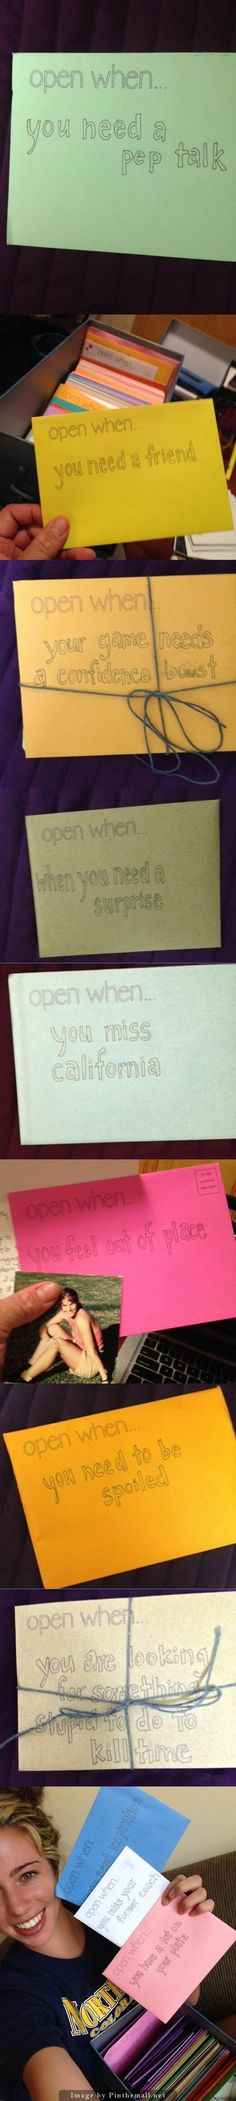 College gifts: Open When...   Sent a box of 65 cards from me and my wife, friends, family, coaches and influential people in my daughter's life. This should be enough for her to open one every other day of the semester as she starts college. We added pictures, gift cards, cash, and fun gifts. - created via http://pinthemall.net